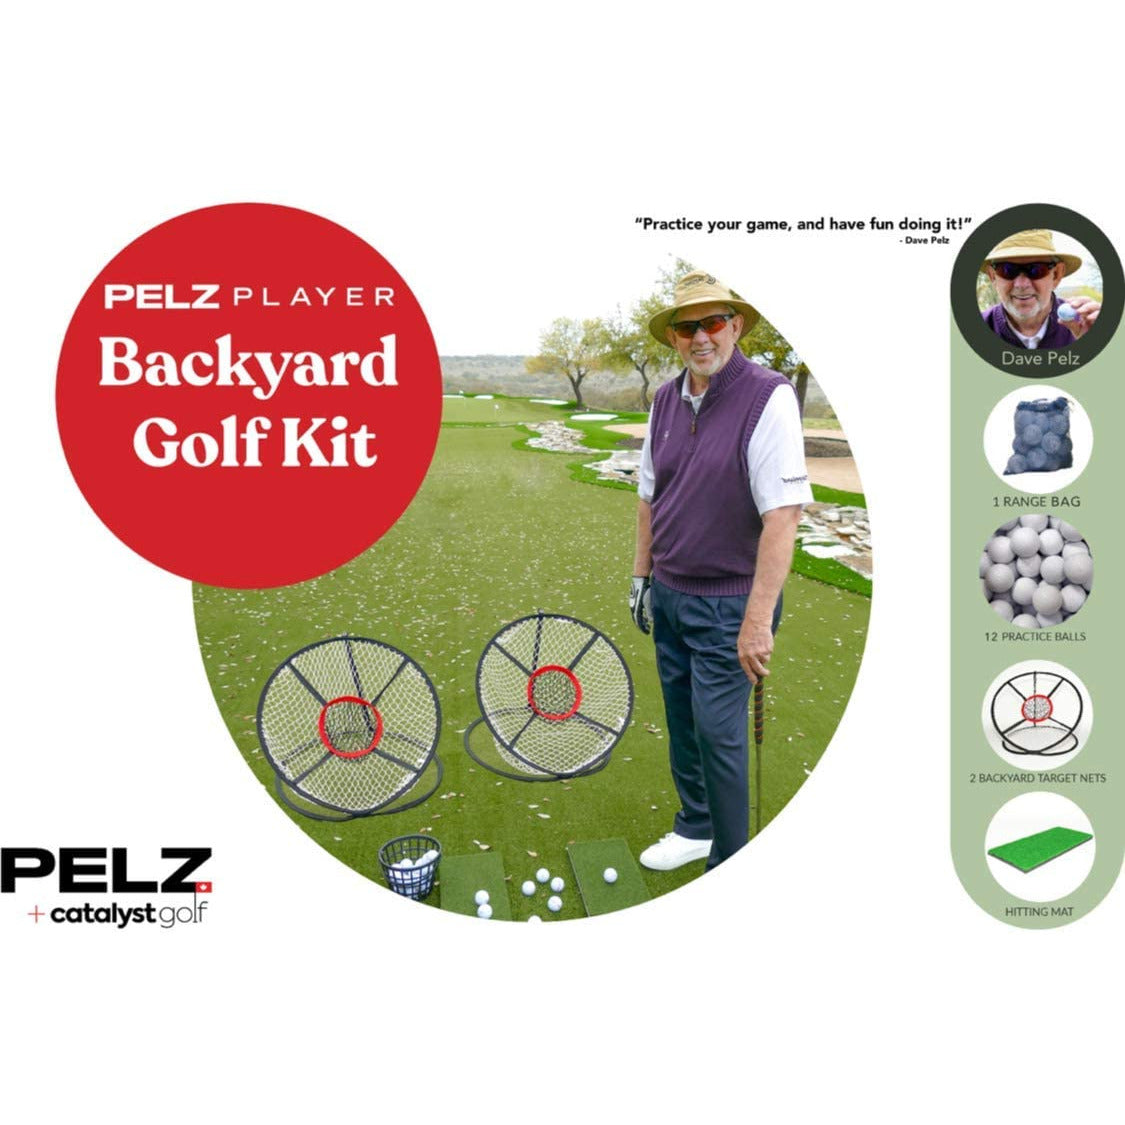 Pelz Player Backyard Golf Kit